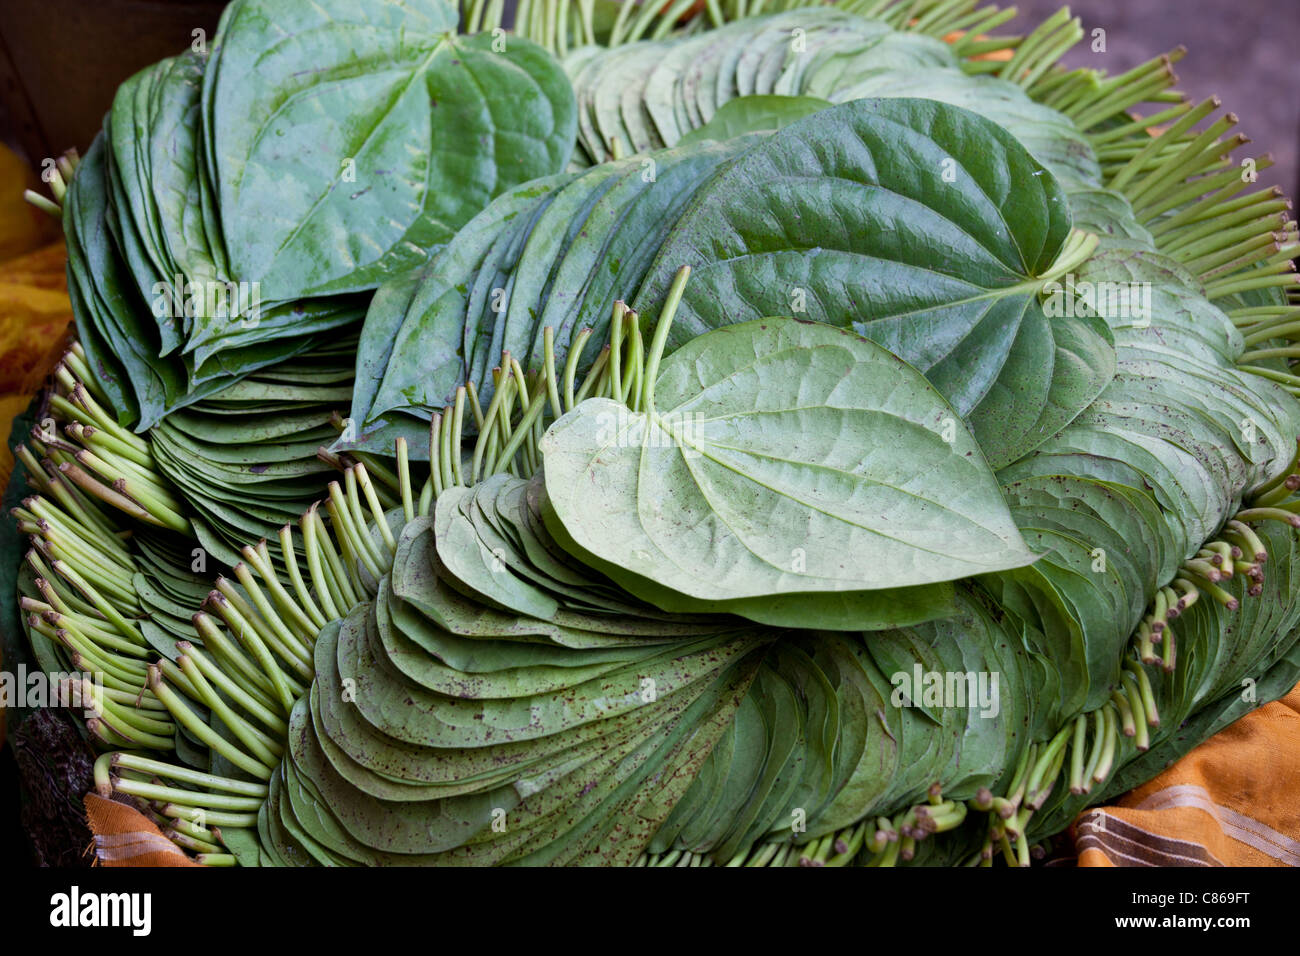 Betel leaves, Piper betle, on sale for medicinal use and as mild stimulant in Old Delhi at Khari Baoli spice market, - Stock Image